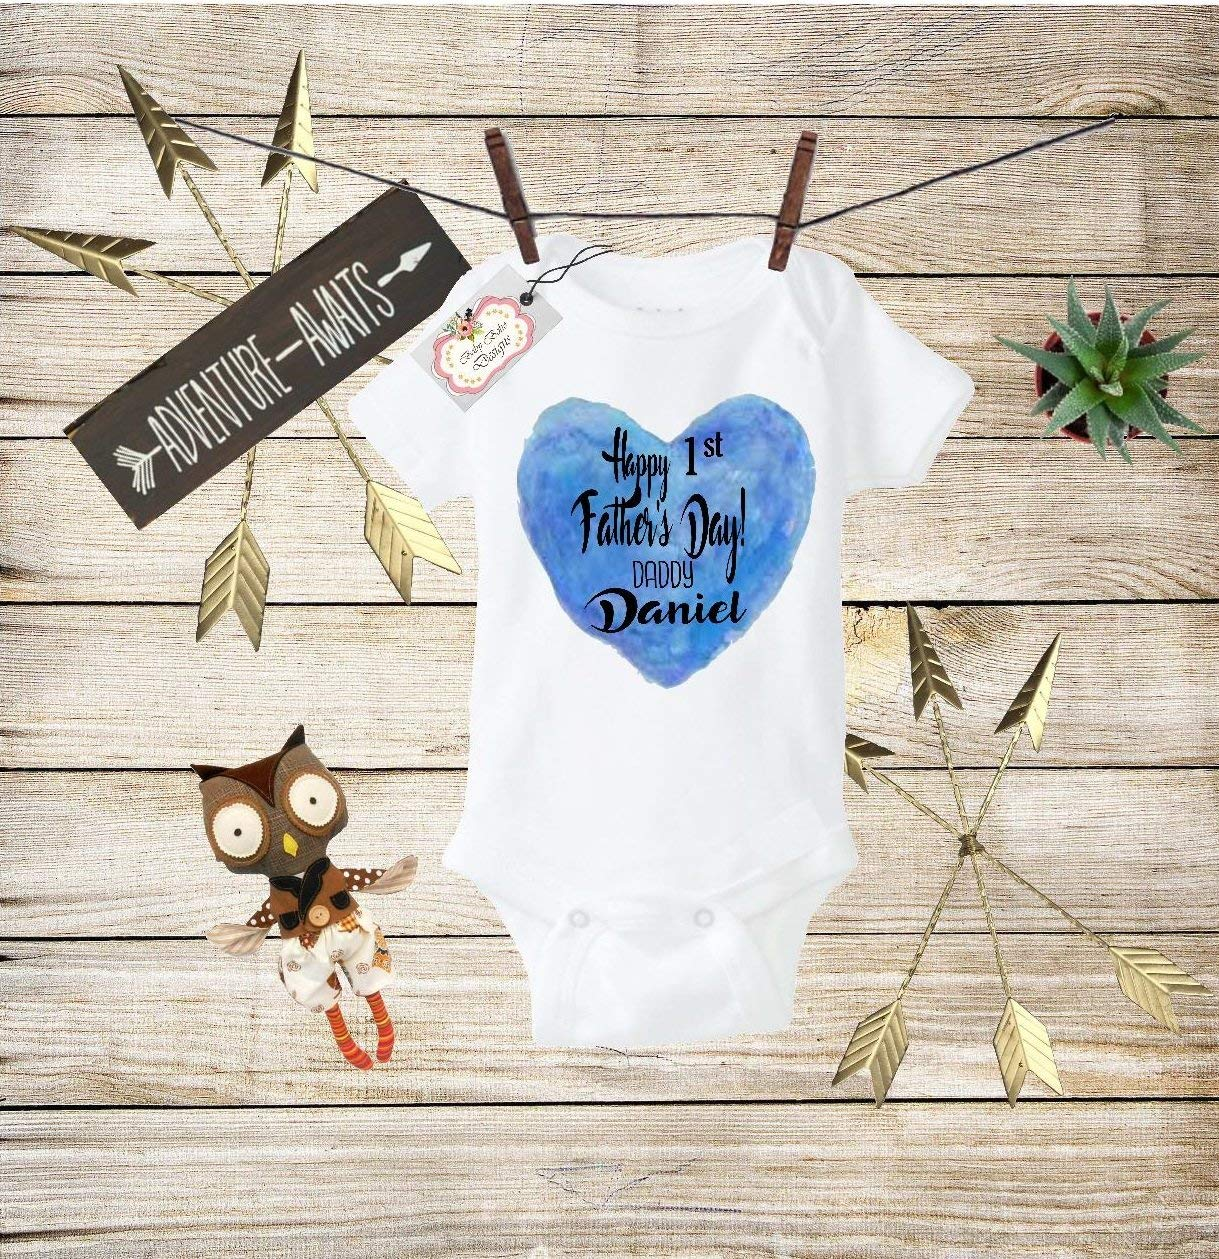 ecbffecf6daa Get Quotations · Happy Fathers Day Baby Clothes Baby Boys Fathers Day Shirt Boys  Fathers Day Bodysuit Fathers Day